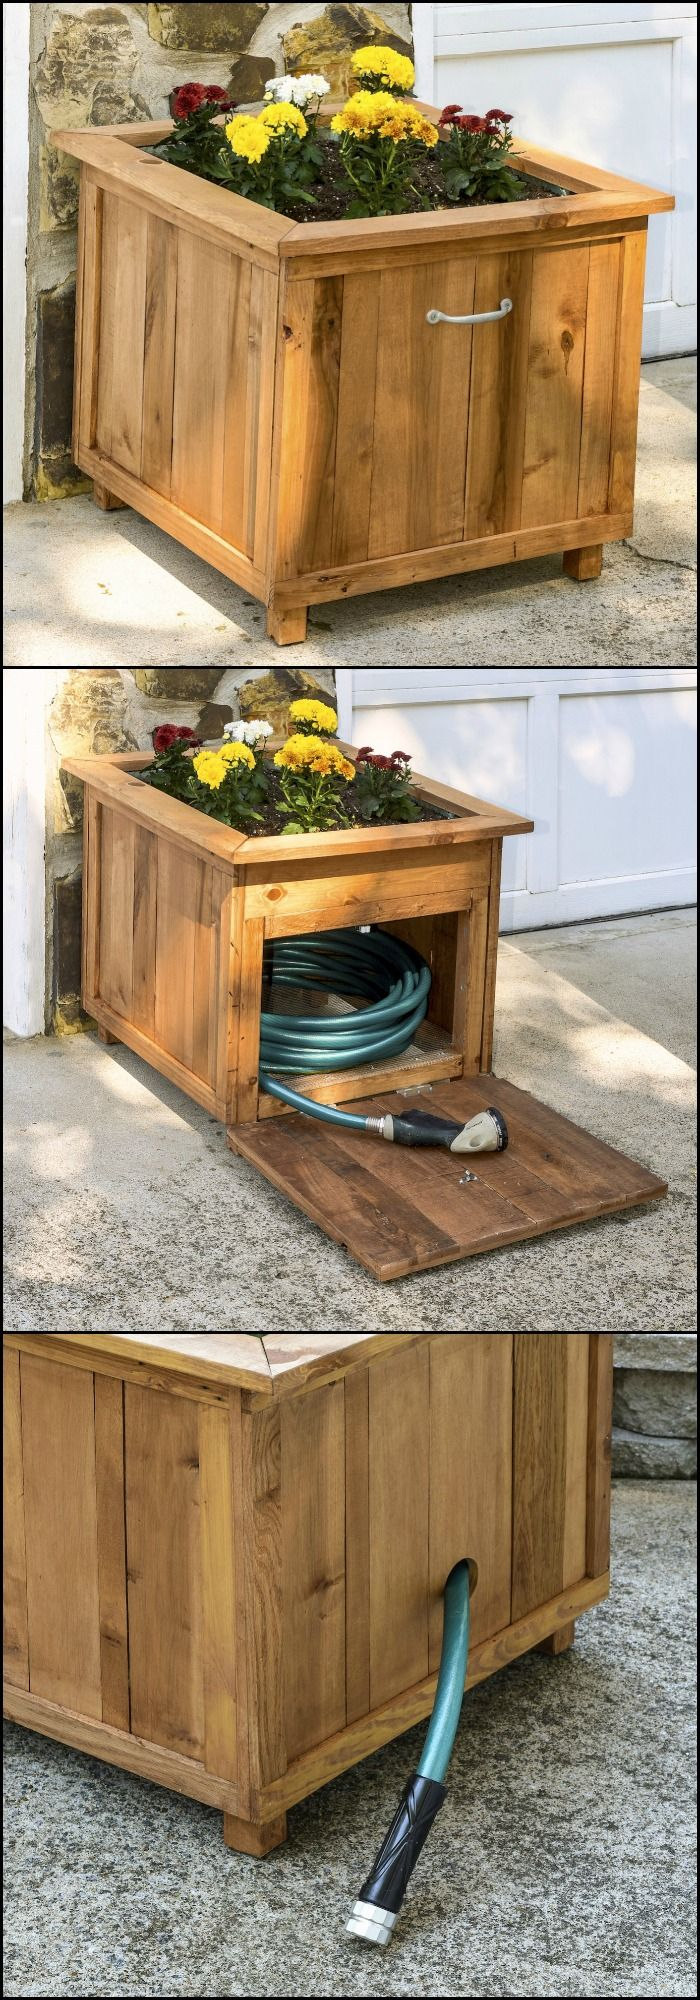 Garden Hose Storage Ideas garden hose storage ideas Build A Garden Hose Storage With Planter